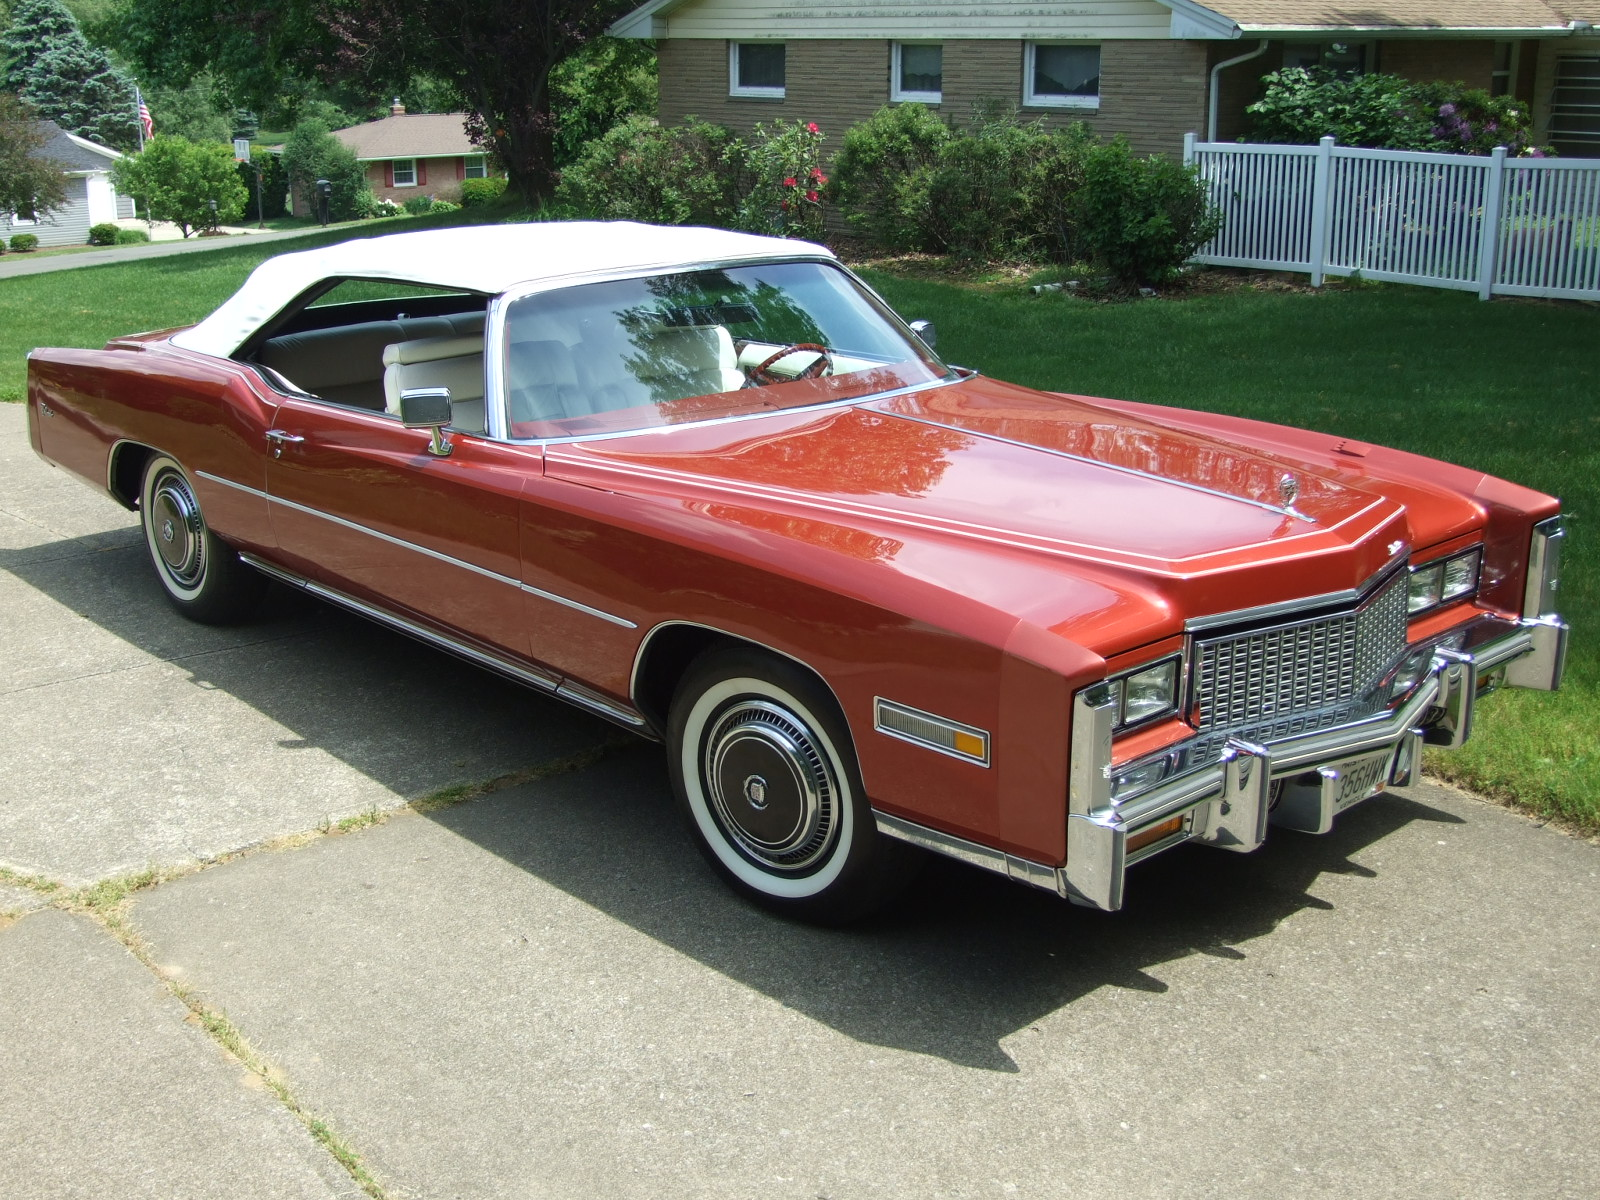 1976 cadillac eldorado convertible. Cars Review. Best American Auto & Cars Review